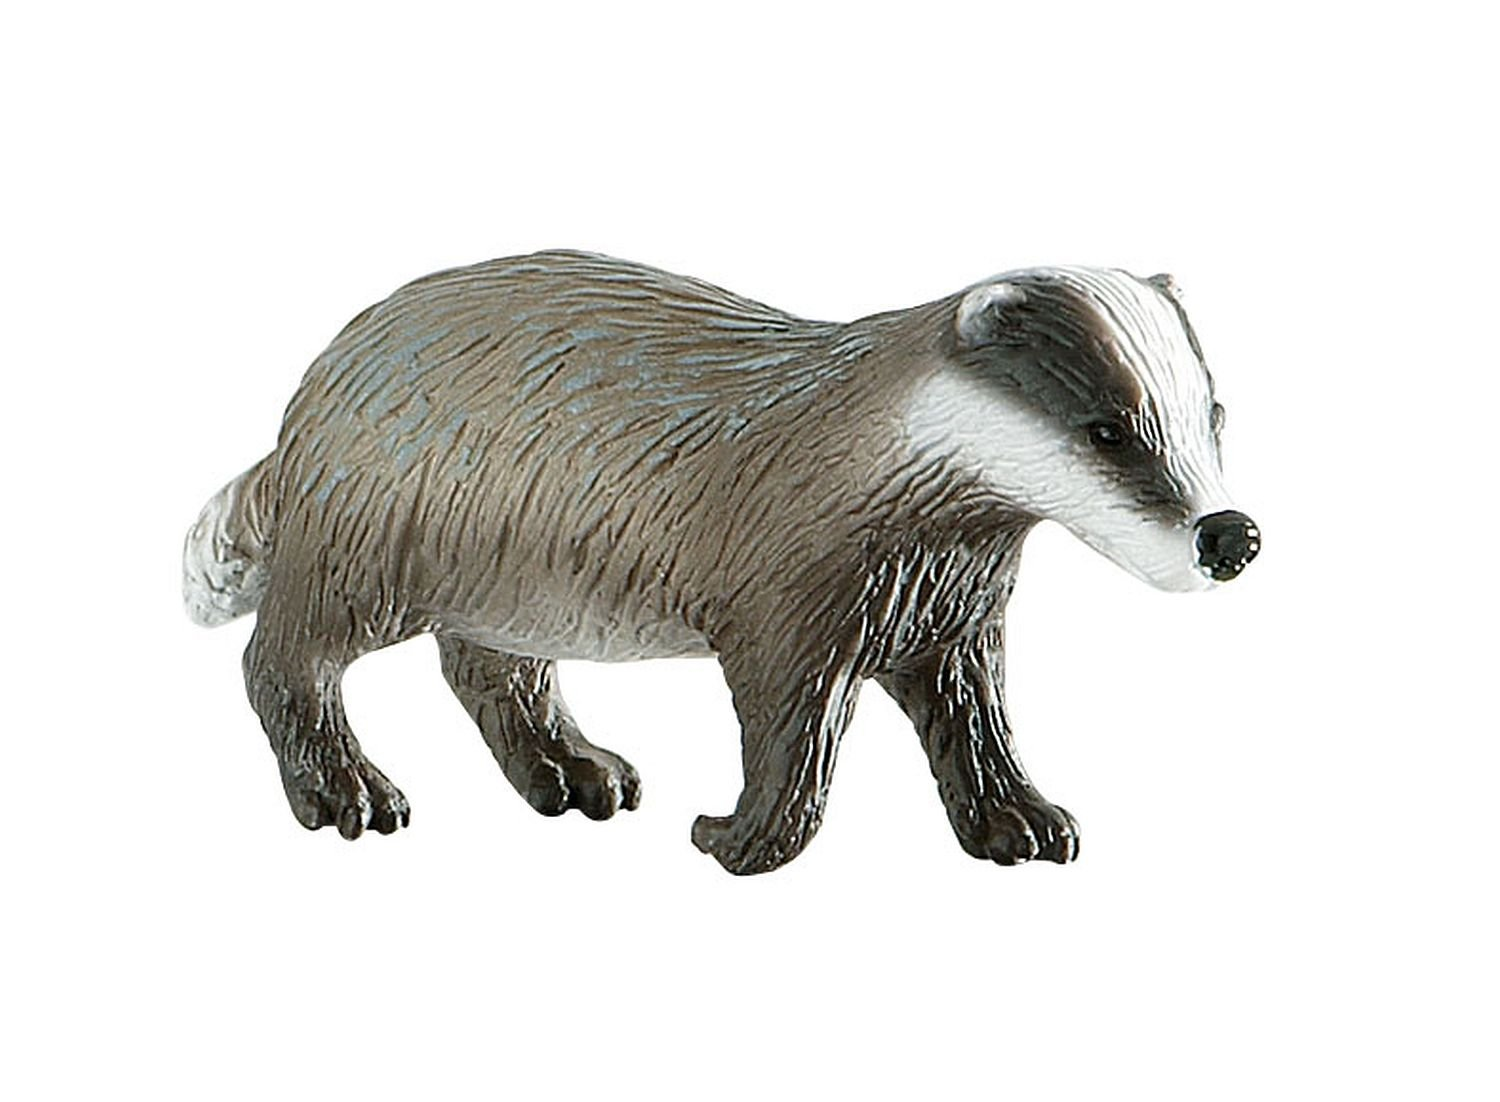 Badger 7 Cm Wild Animals Bullyland 64457 In Many Styles Animals & Dinosaurs